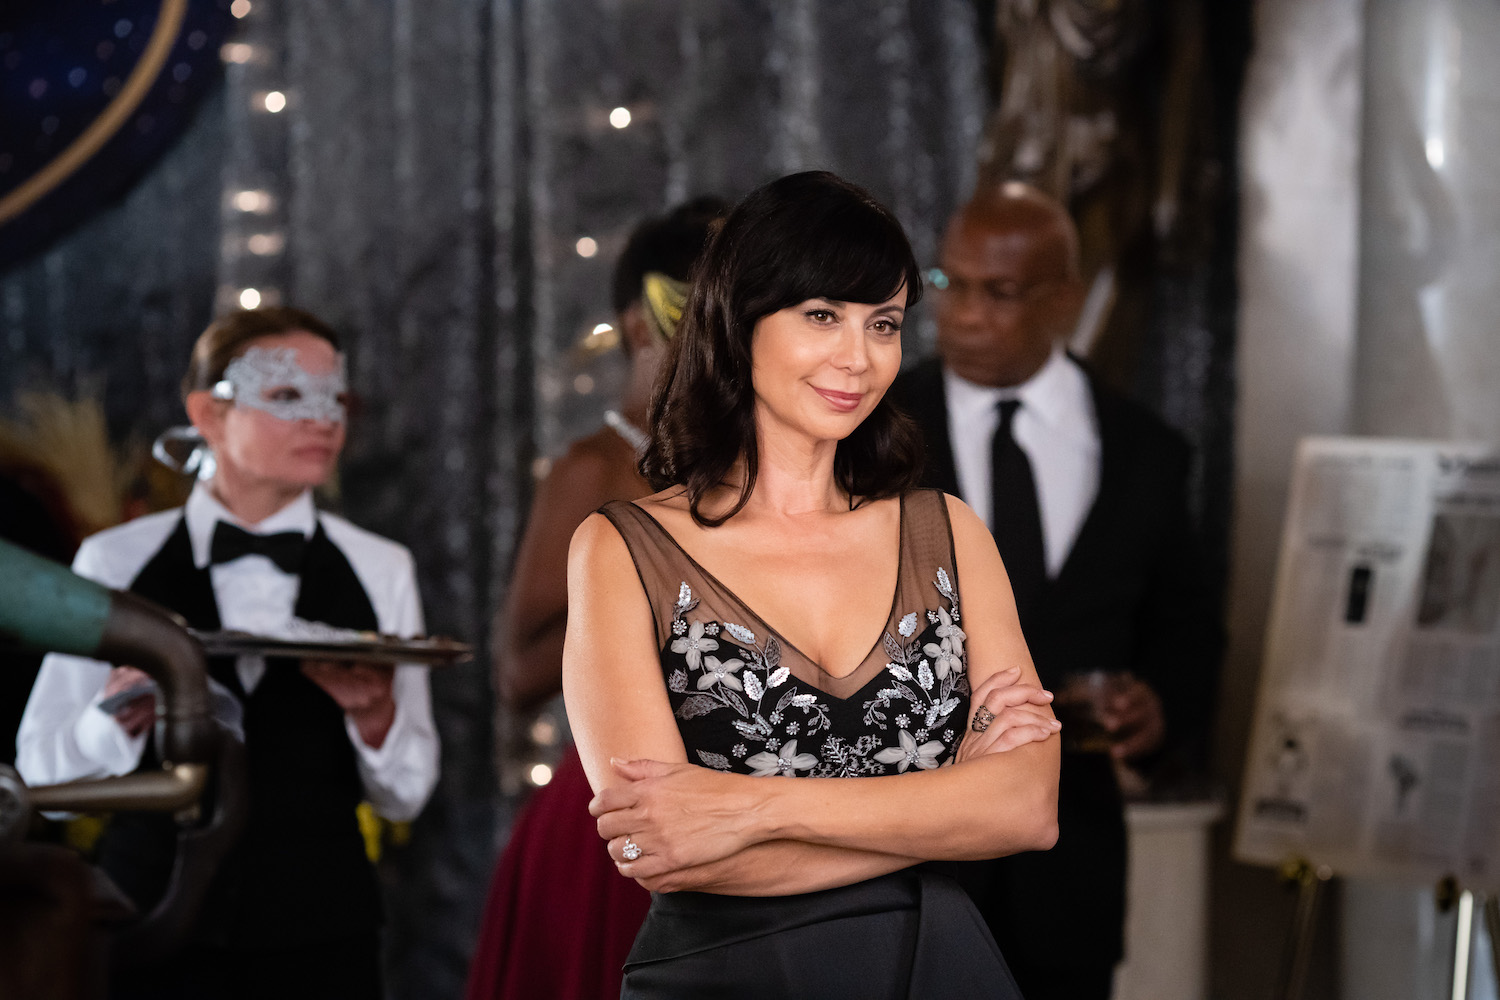 Catherine Bell as Cassie stands with crossed arms in an episode of Good Witch